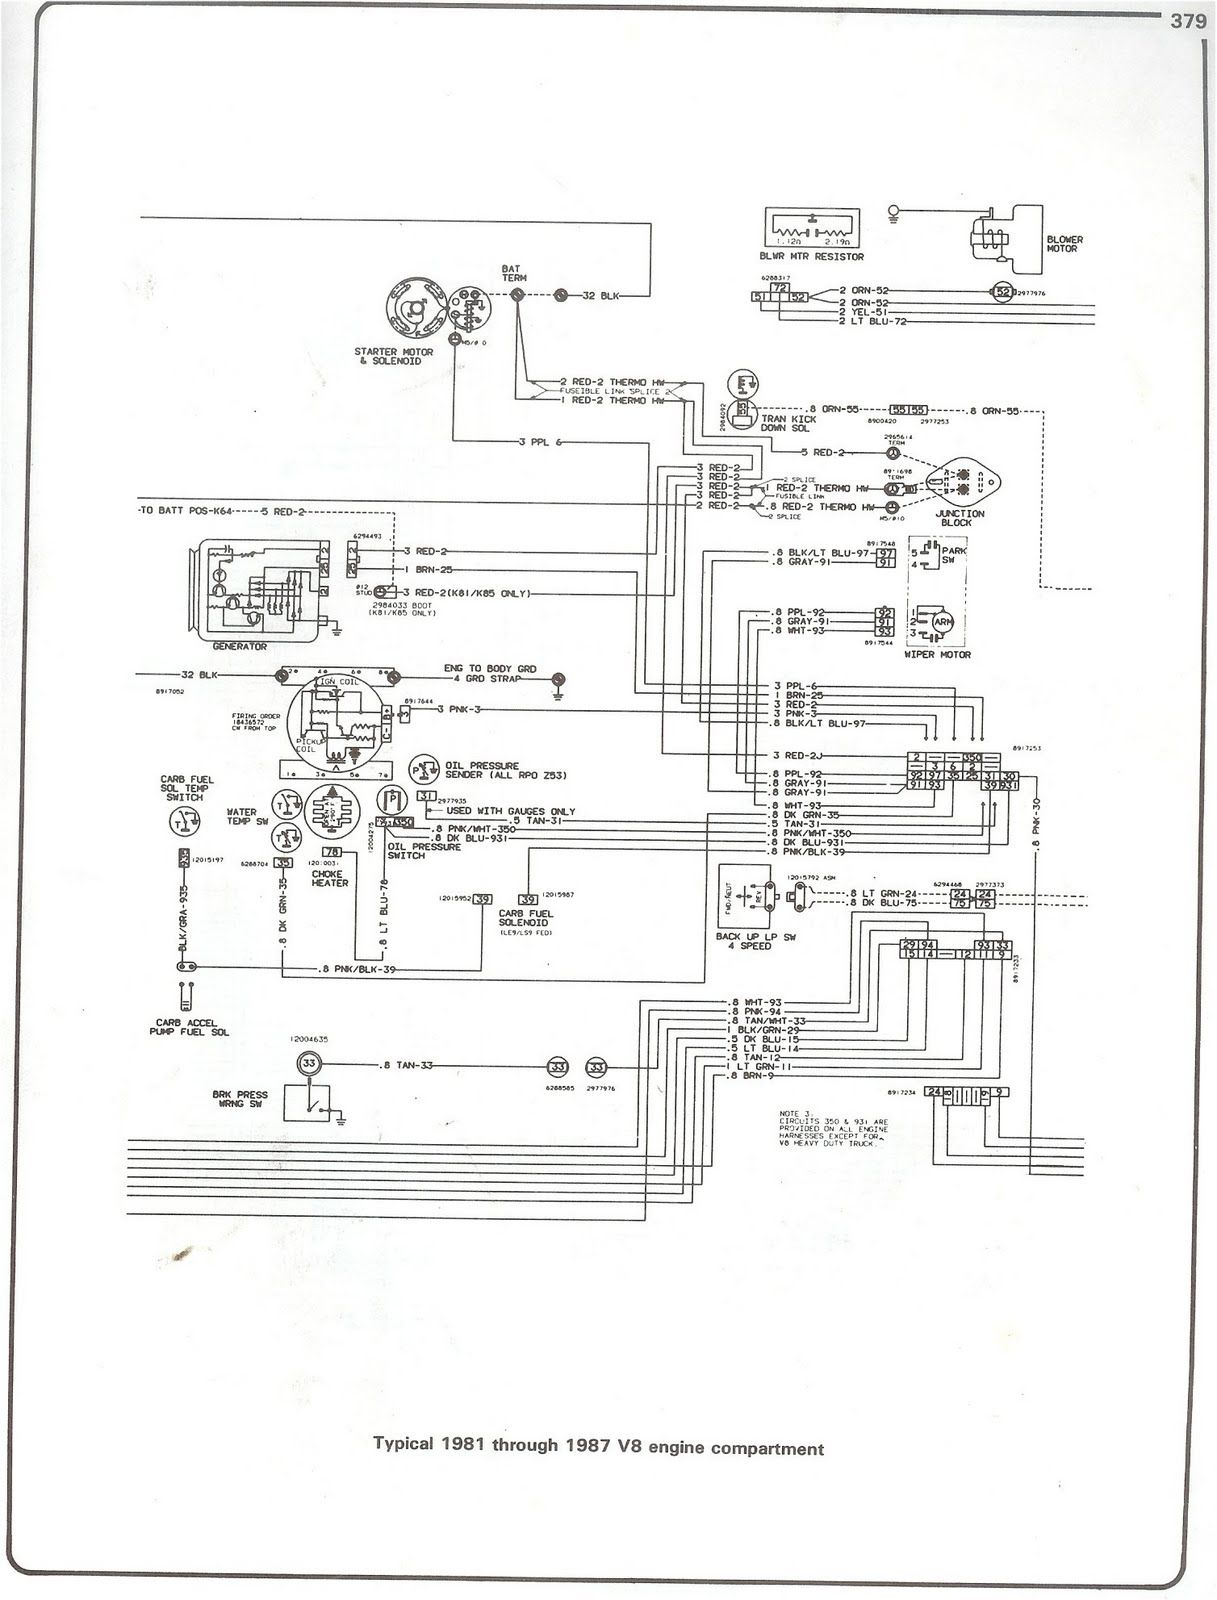 This is engine compartment wiring diagram for 1981 trough 1987 Chevrolet V8  Truck. Description from autowiringdiagra… | Chevy trucks, 1979 chevy truck,  Truck engine